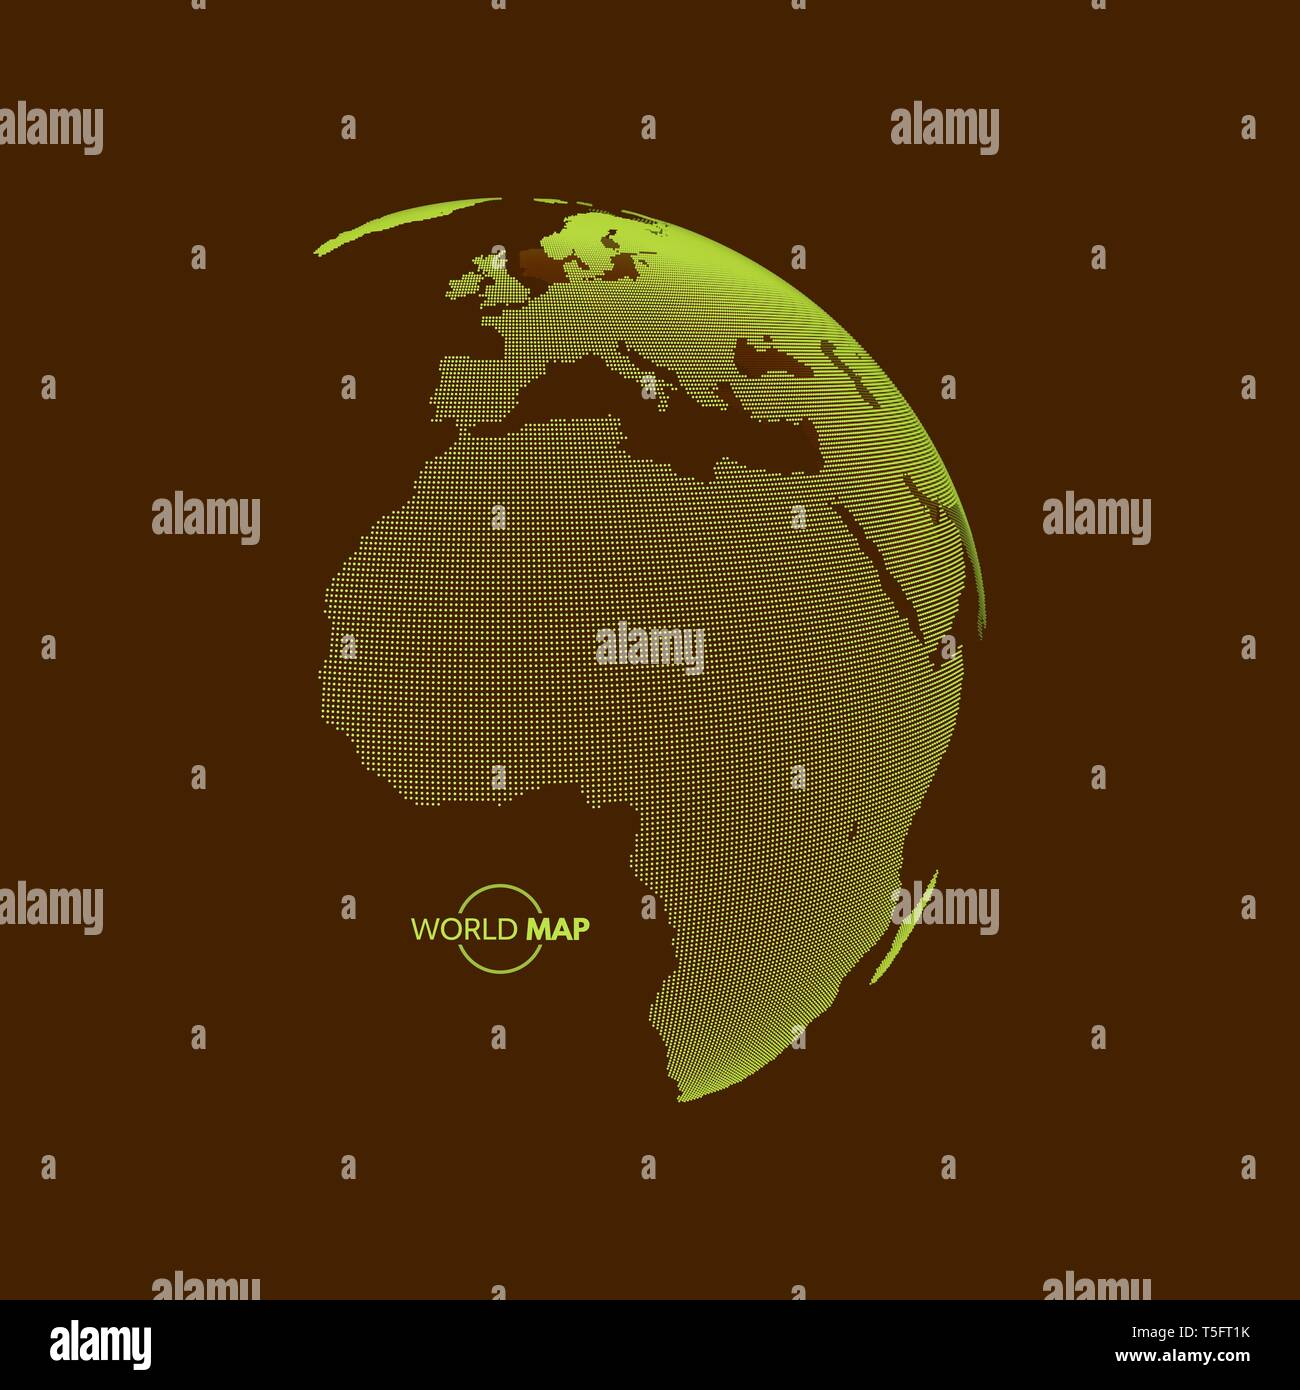 Africa and Europe. Earth globe. Global business marketing concept. Dotted style. Design for education, science, web presentations. - Stock Image